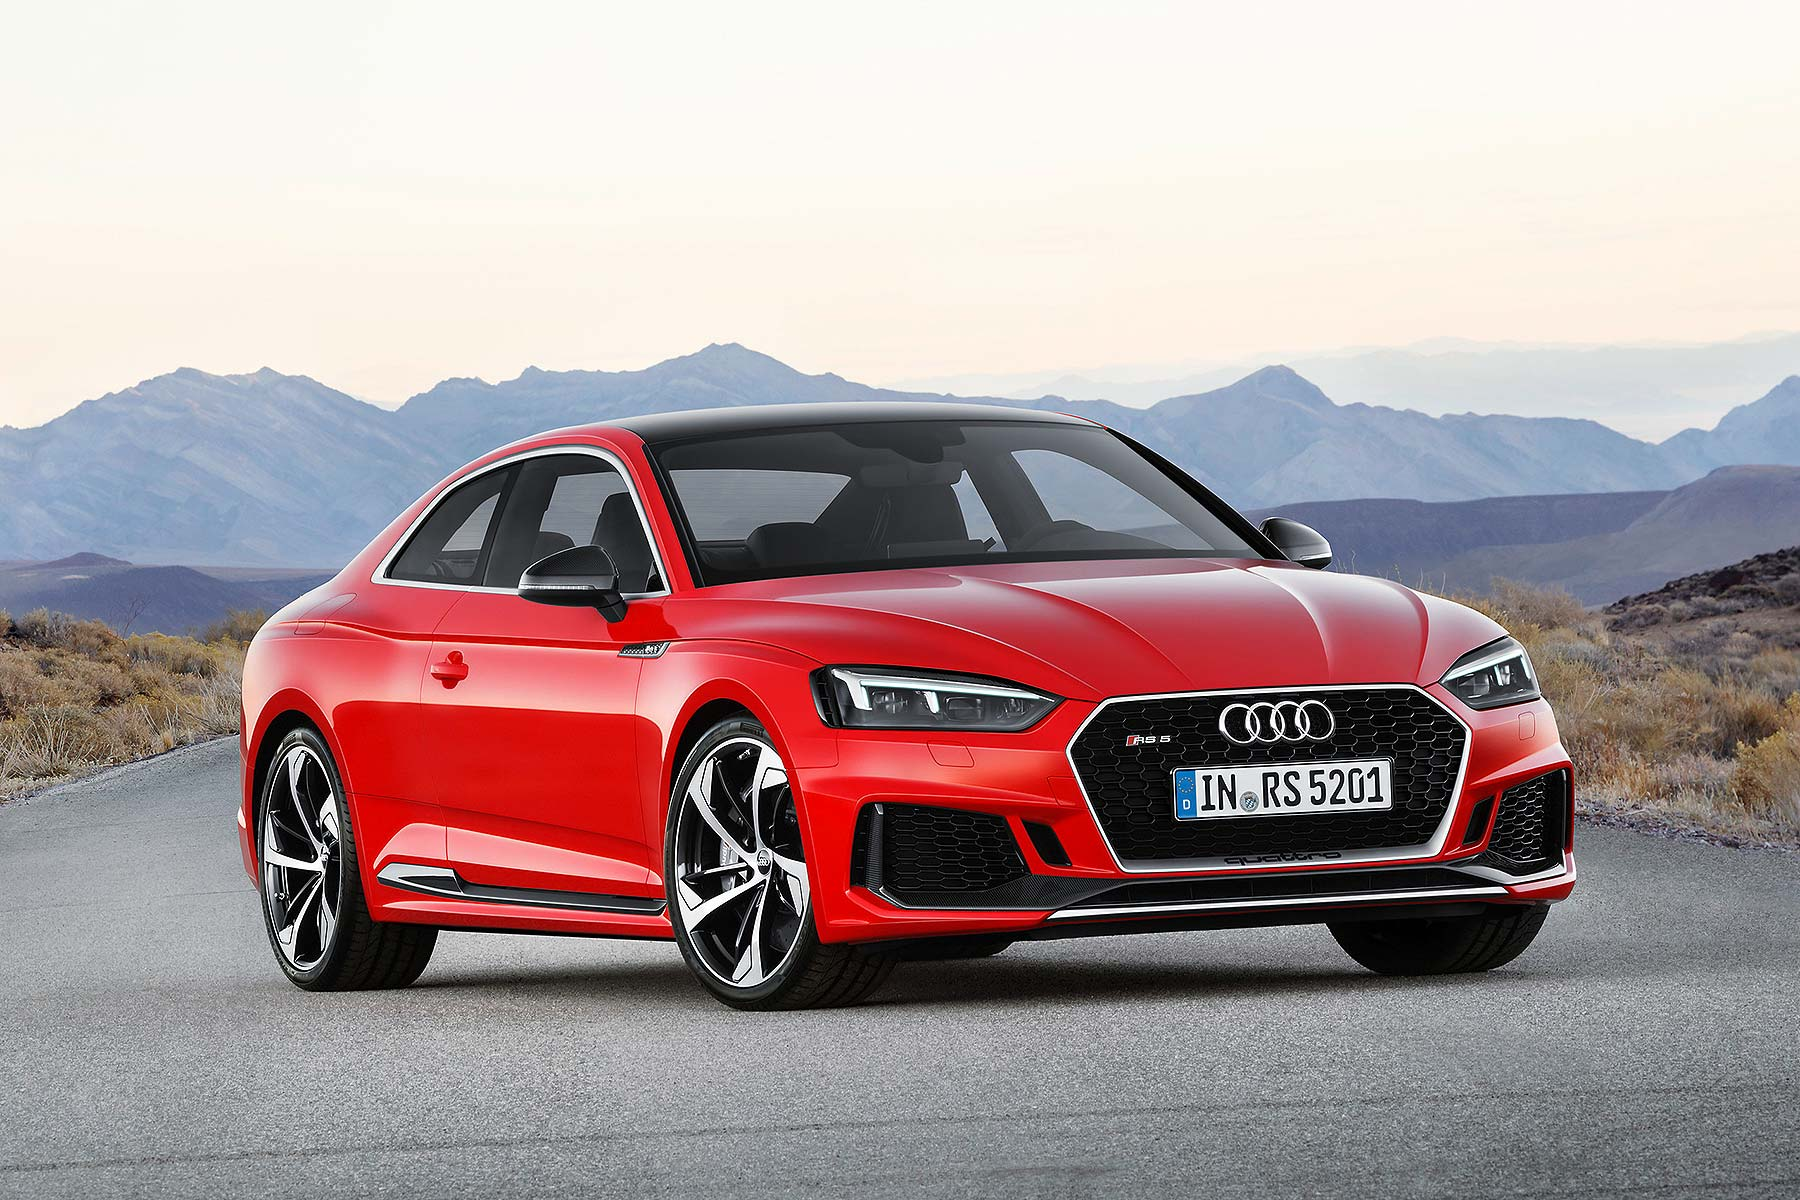 New Audi Rs5 2017 Price From 163 62 900 0 62mph Cut To 3